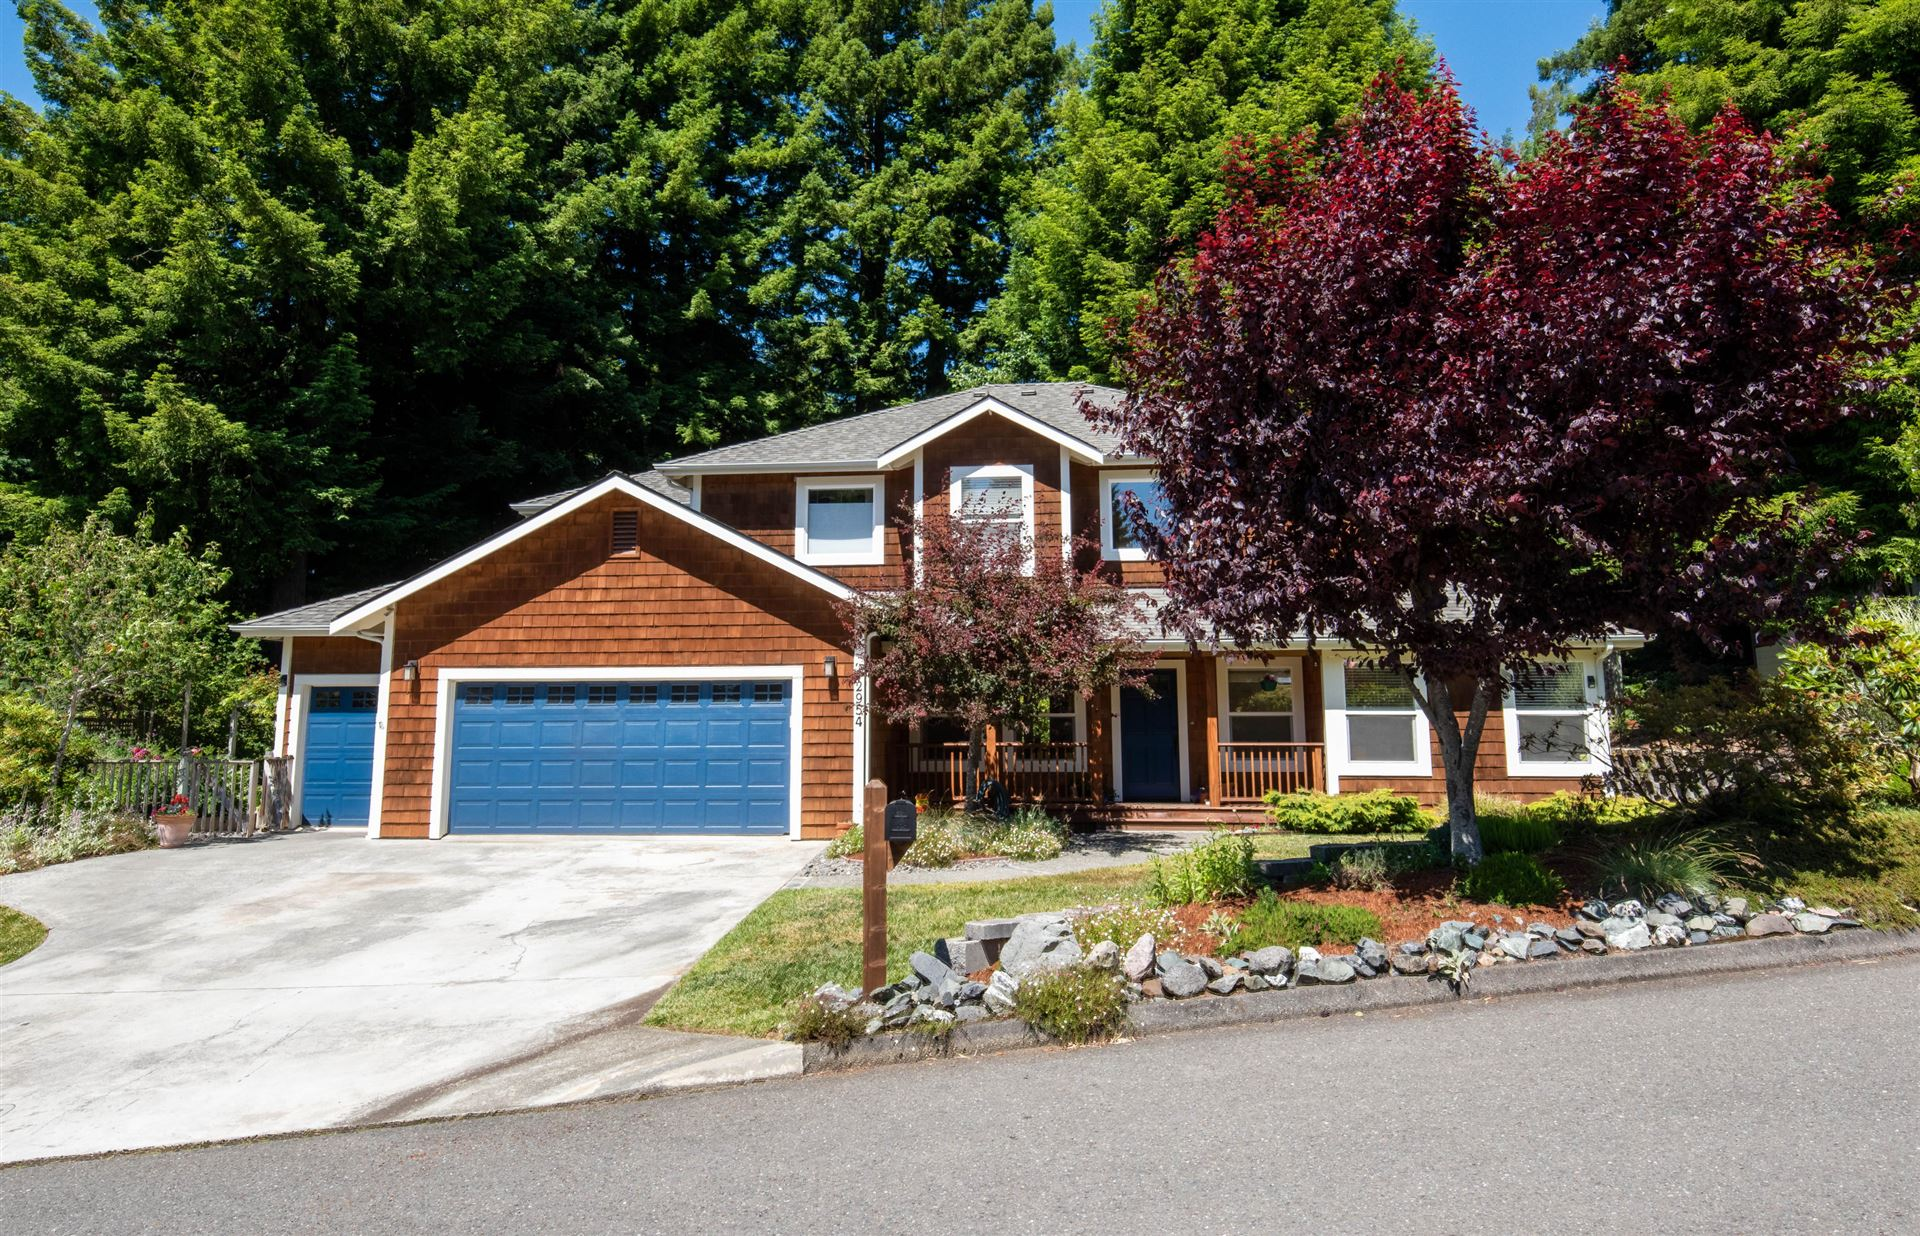 2954 Woodland Court, Arcata, CA 95521 - MLS#: 256831